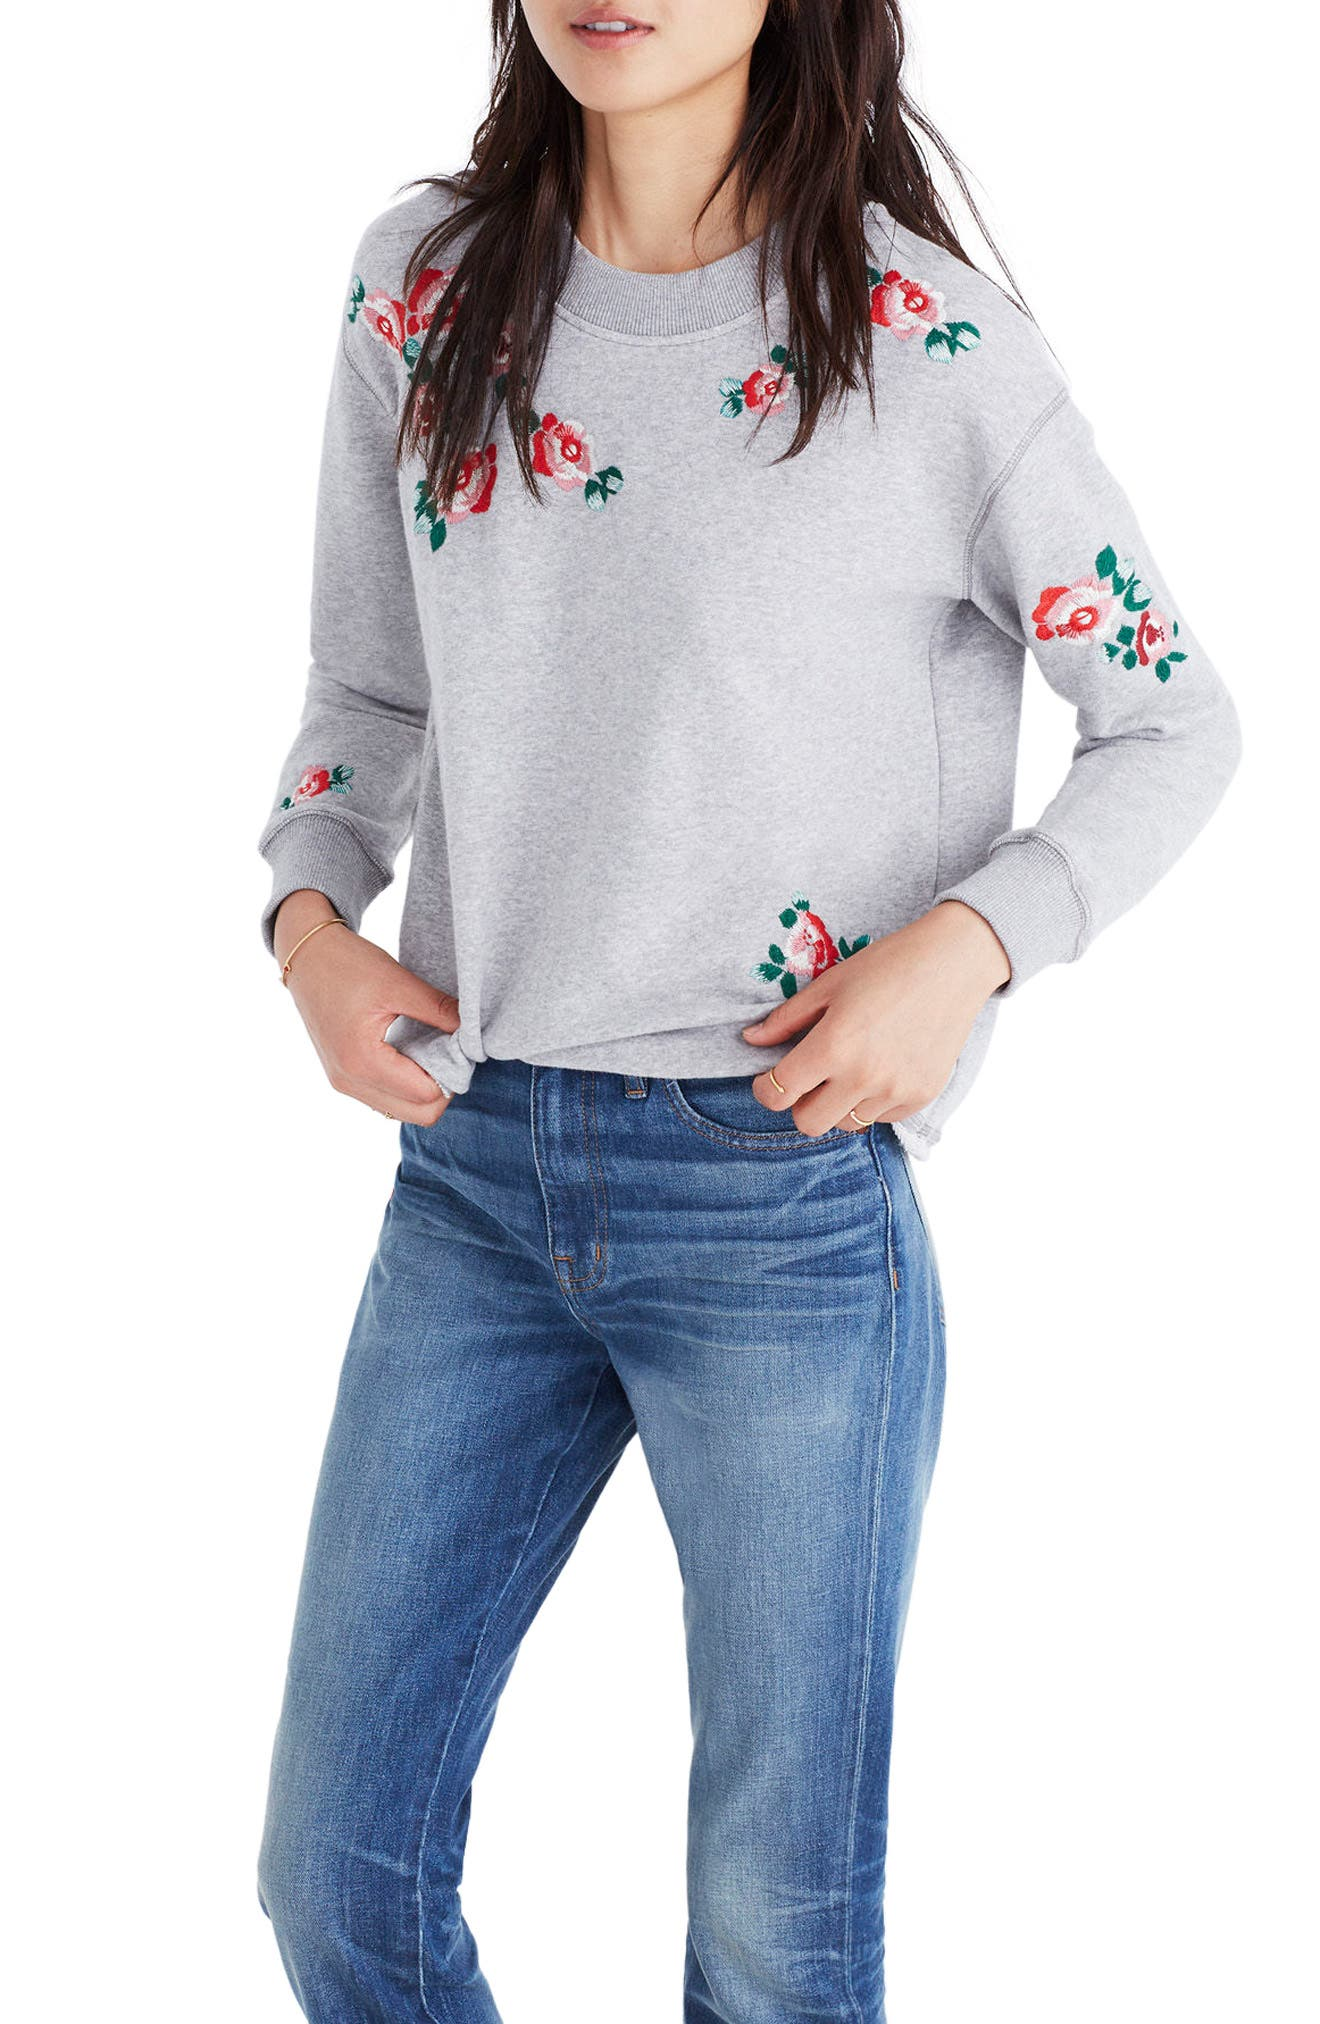 Madewell Embroidered Crop Sweatshirt